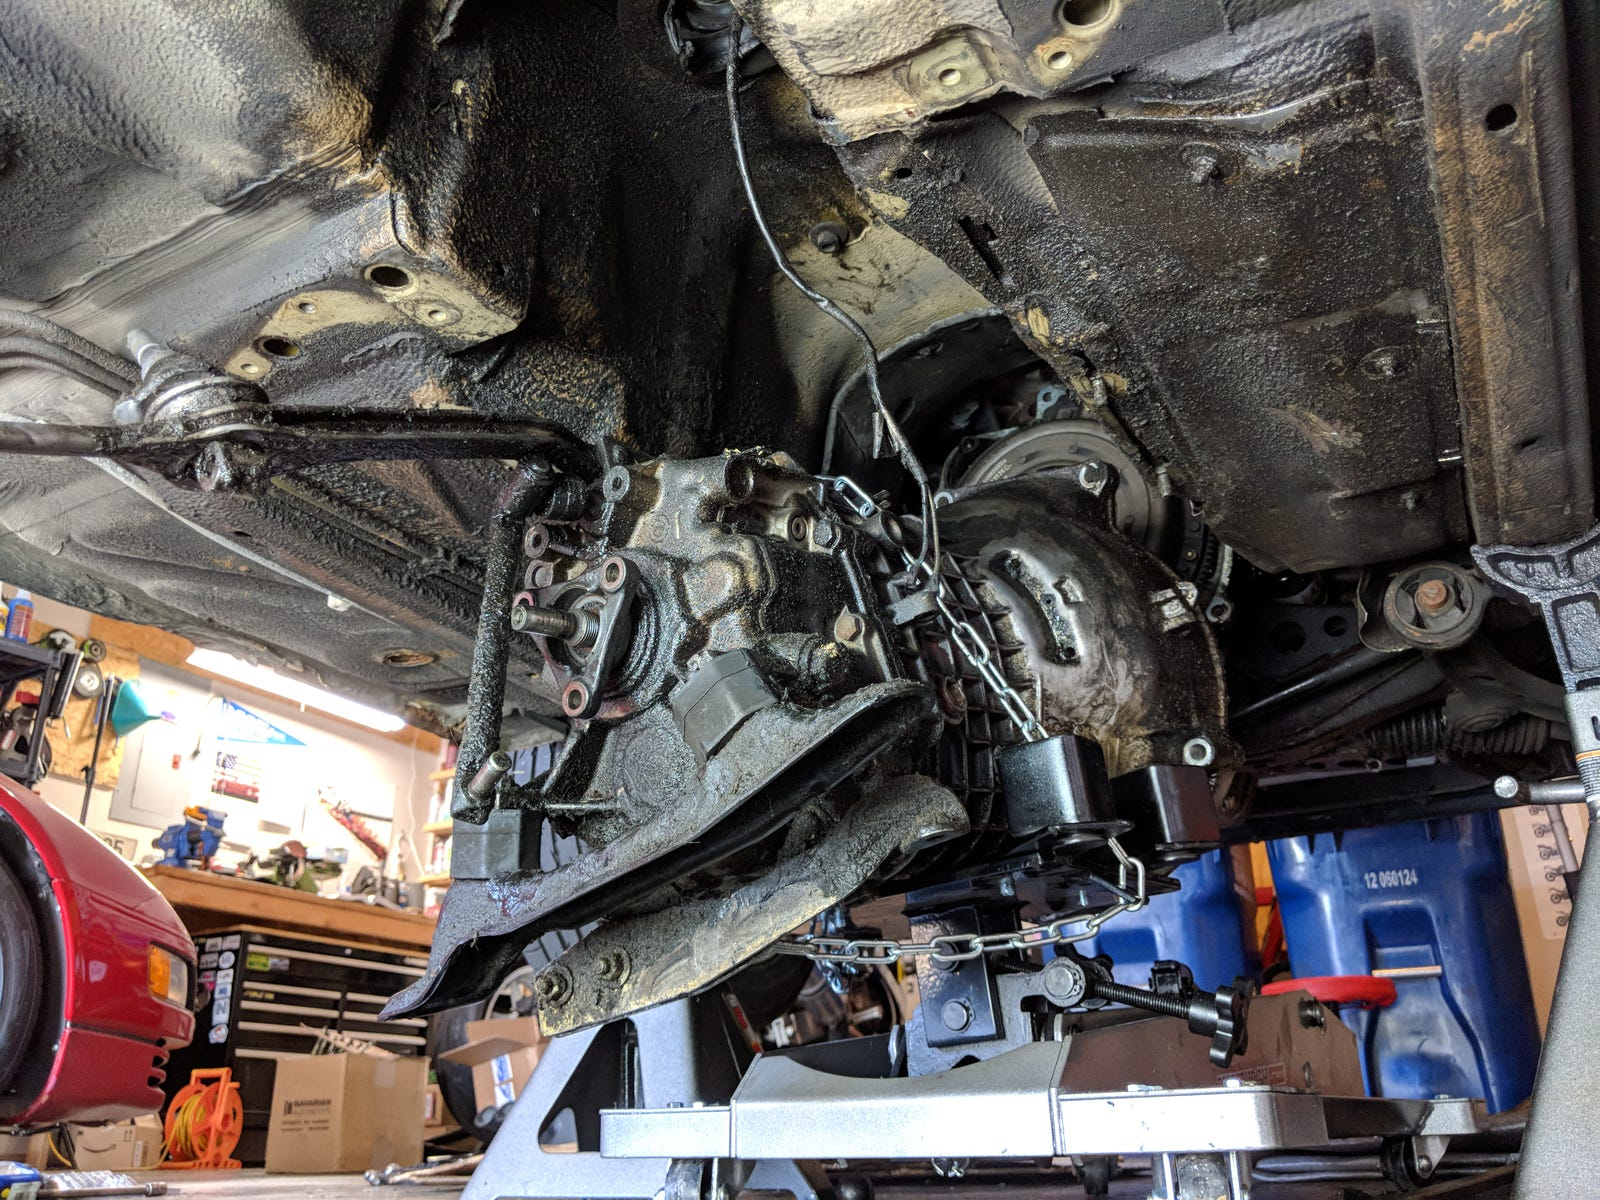 The transmission being lowered from the car.